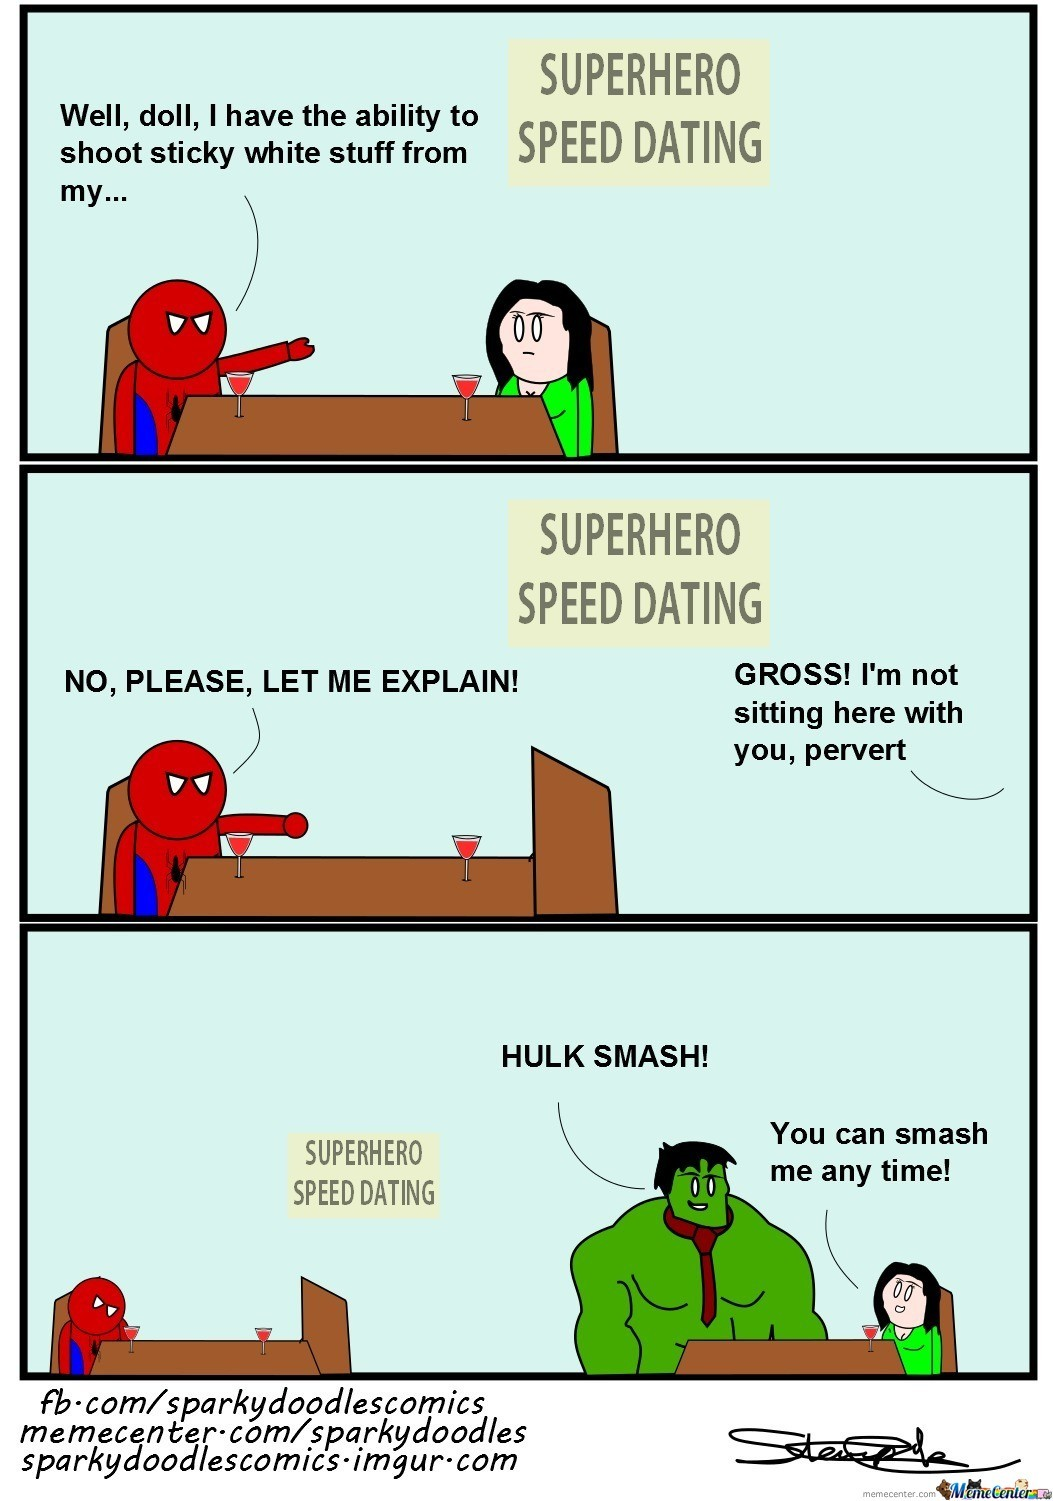 Sparky Doodles: Superhero Speed Dating